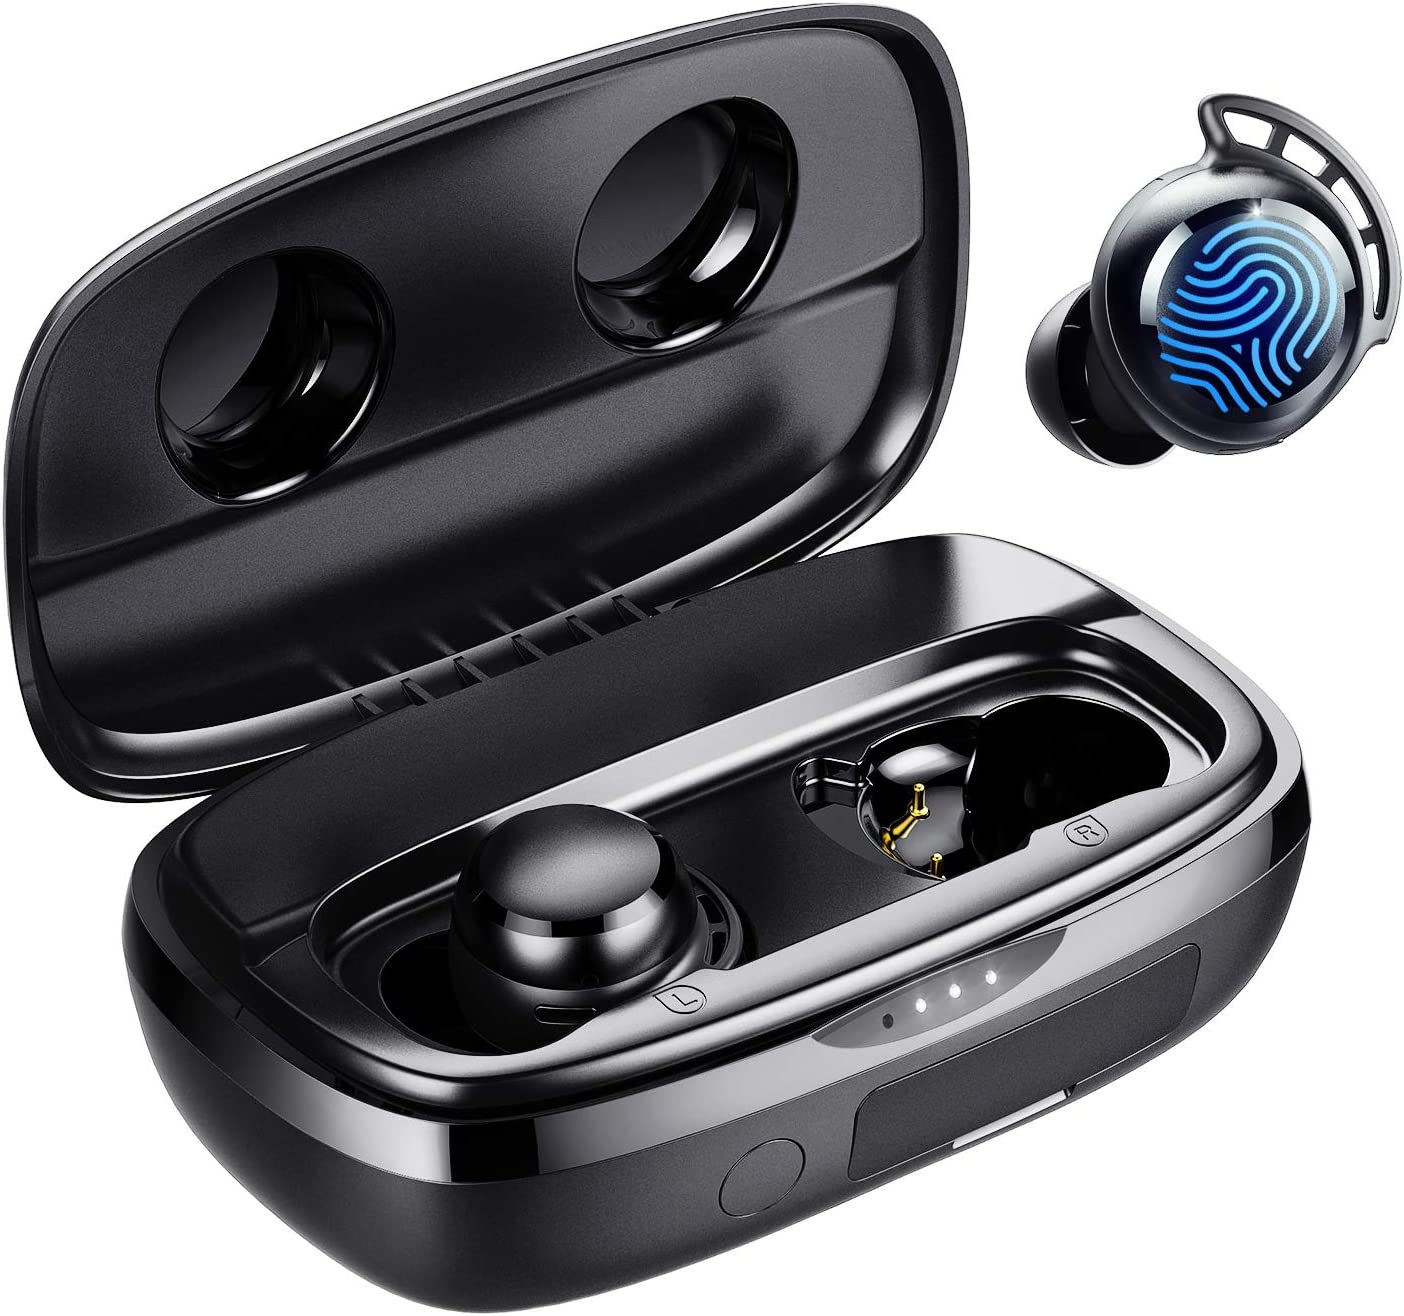 Wireless Earbuds, Tribit 100H Playtime Bluetooth 5.0 IPX8 Waterproof Touch Control Ture Wireless Bluetooth Earbuds with Mic Earphones in-Ear Deep Bass Built-in Mic Bluetooth Headphones, FlyBuds 3